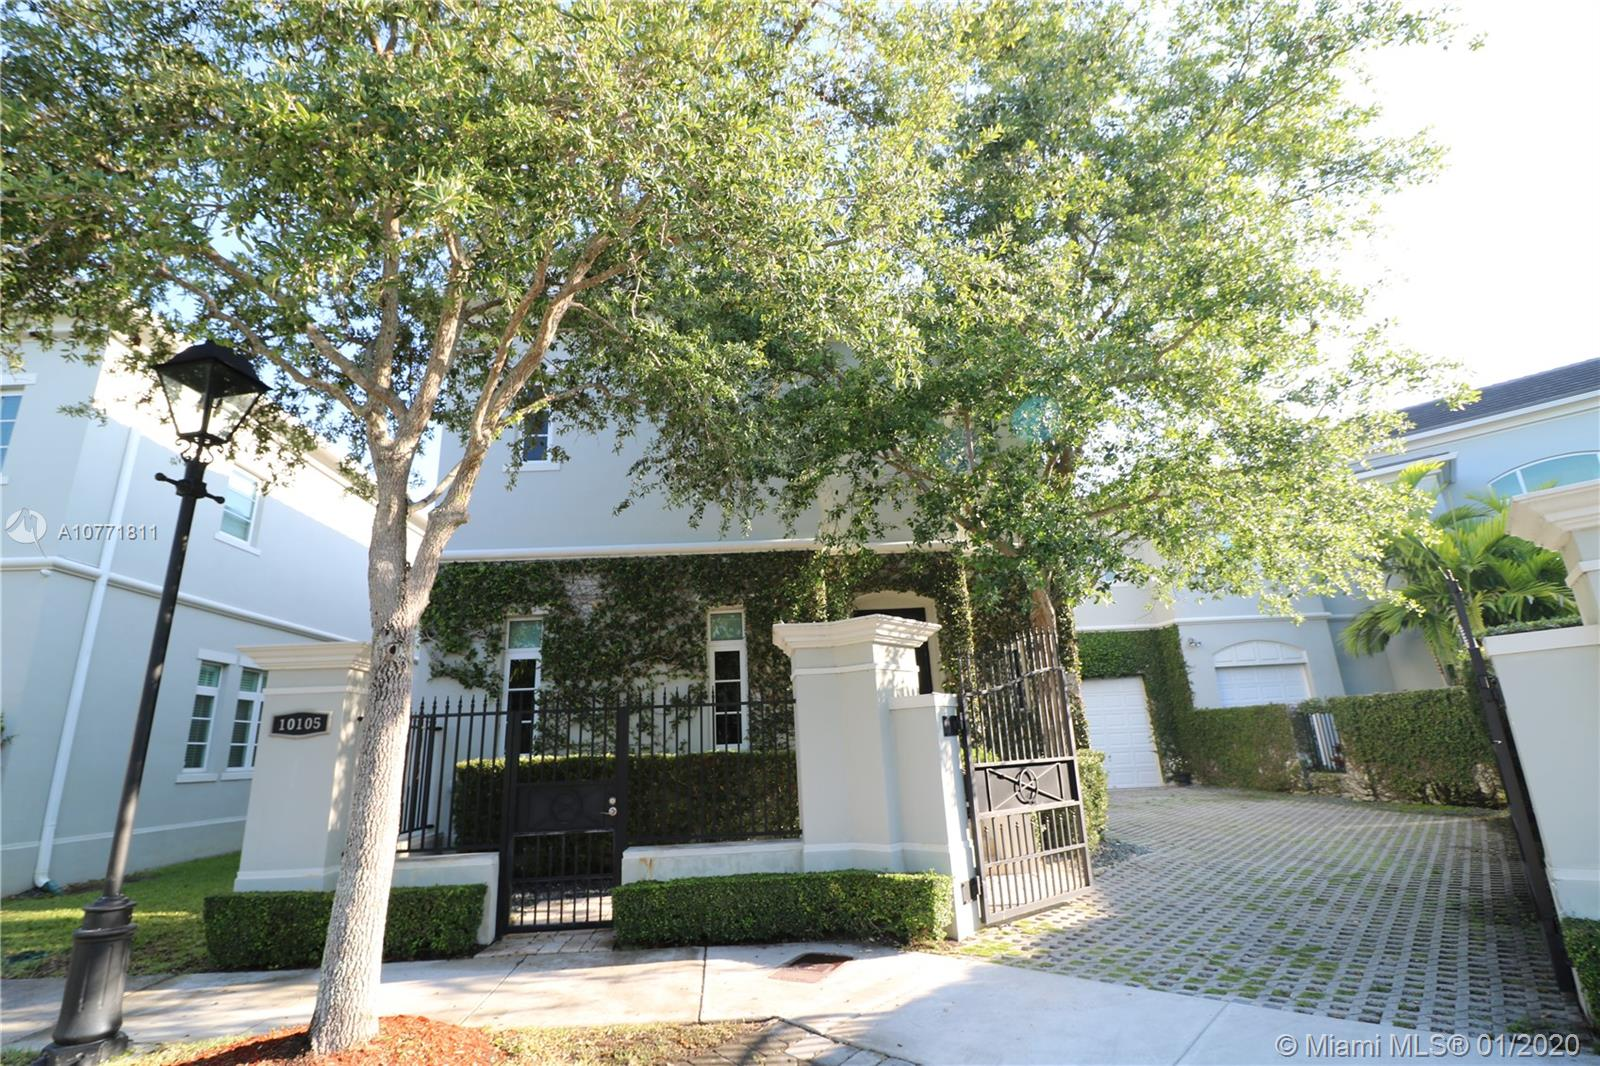 10105 SW 75th Pl, one of homes for sale in Kendall